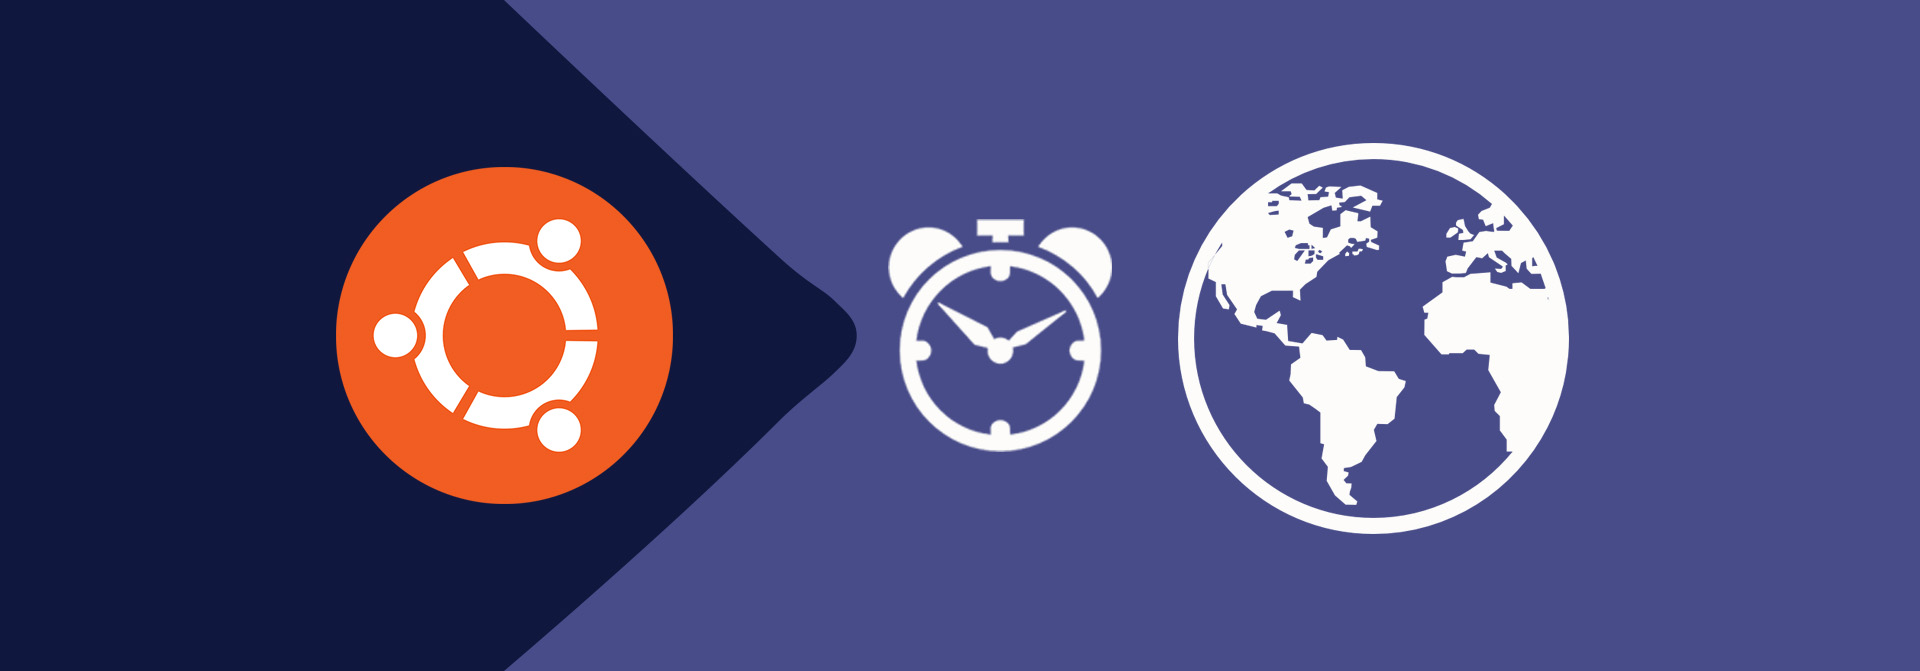 How To Change Timezone On Ubuntu